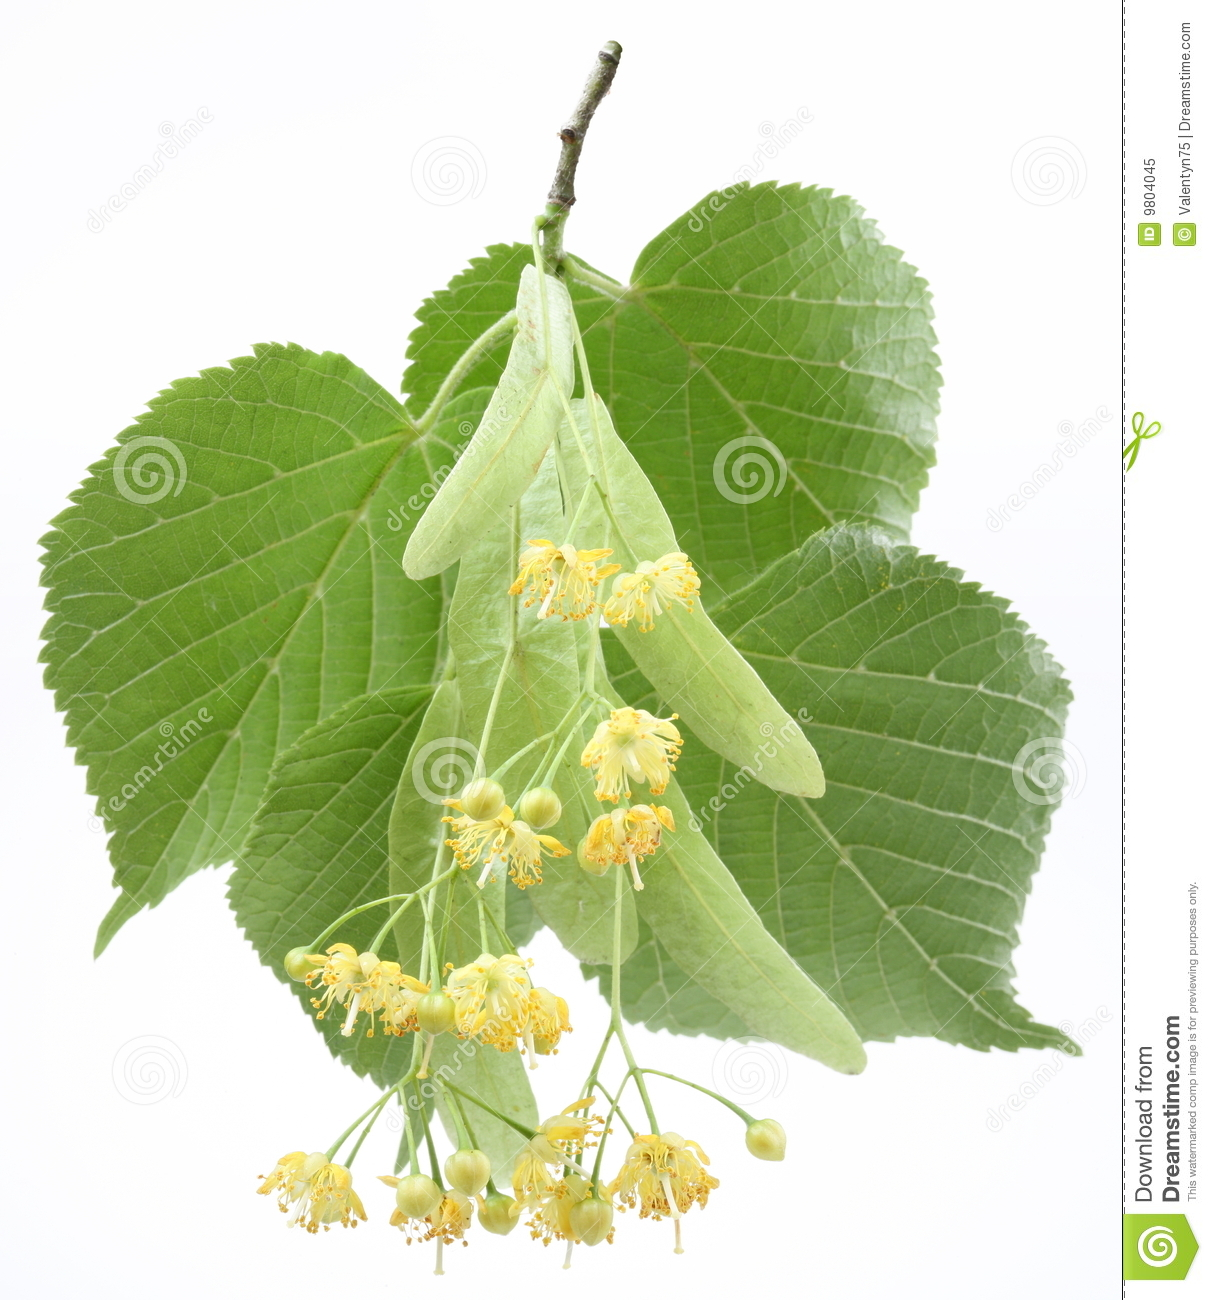 Flowers Linden tree Royalty Free Stock Image